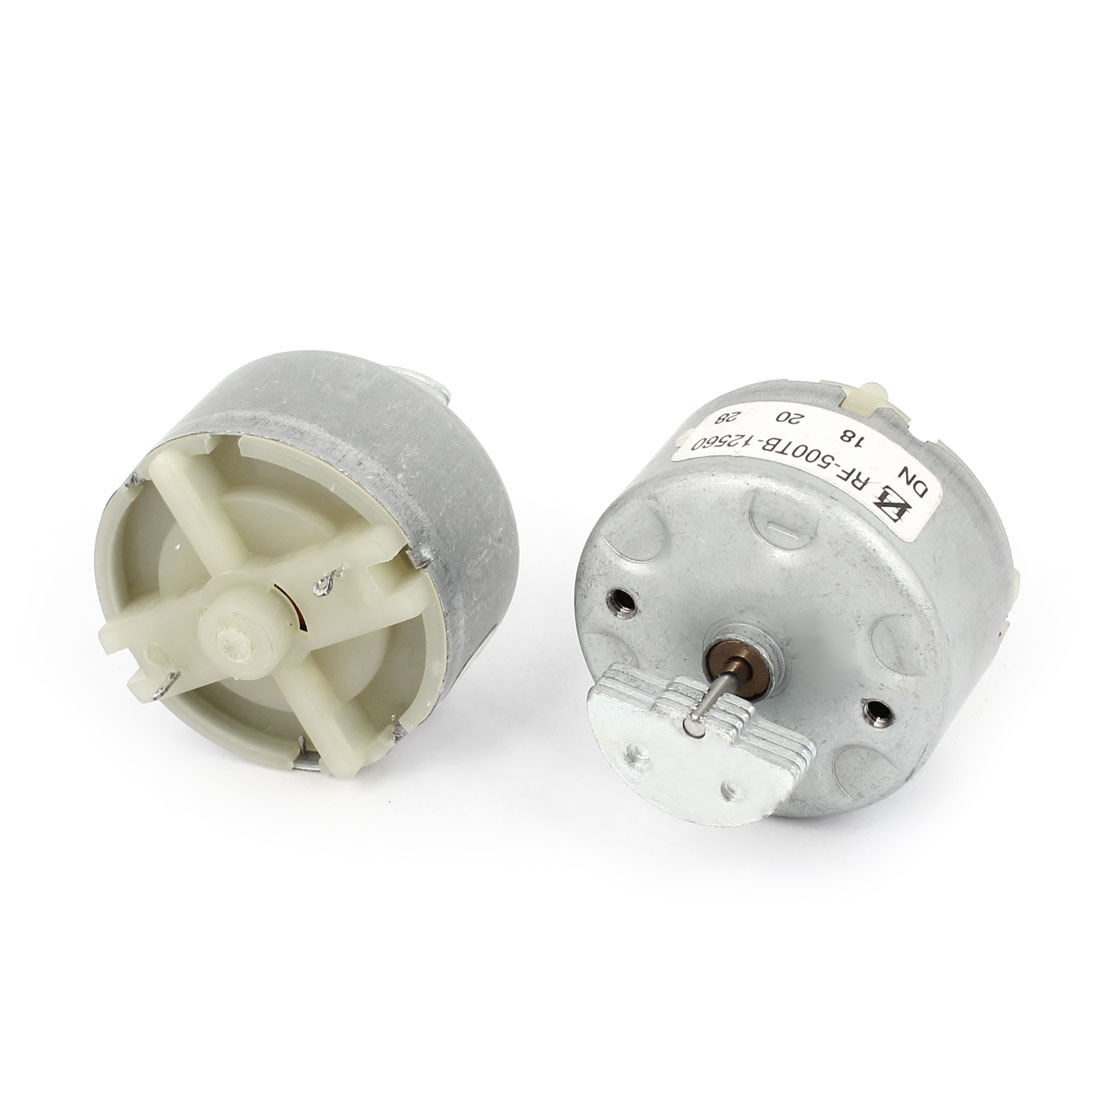 2pcs DC 3-12V 18000RPM Rotary Speed Cylinder Shape Electric Vibration Motor